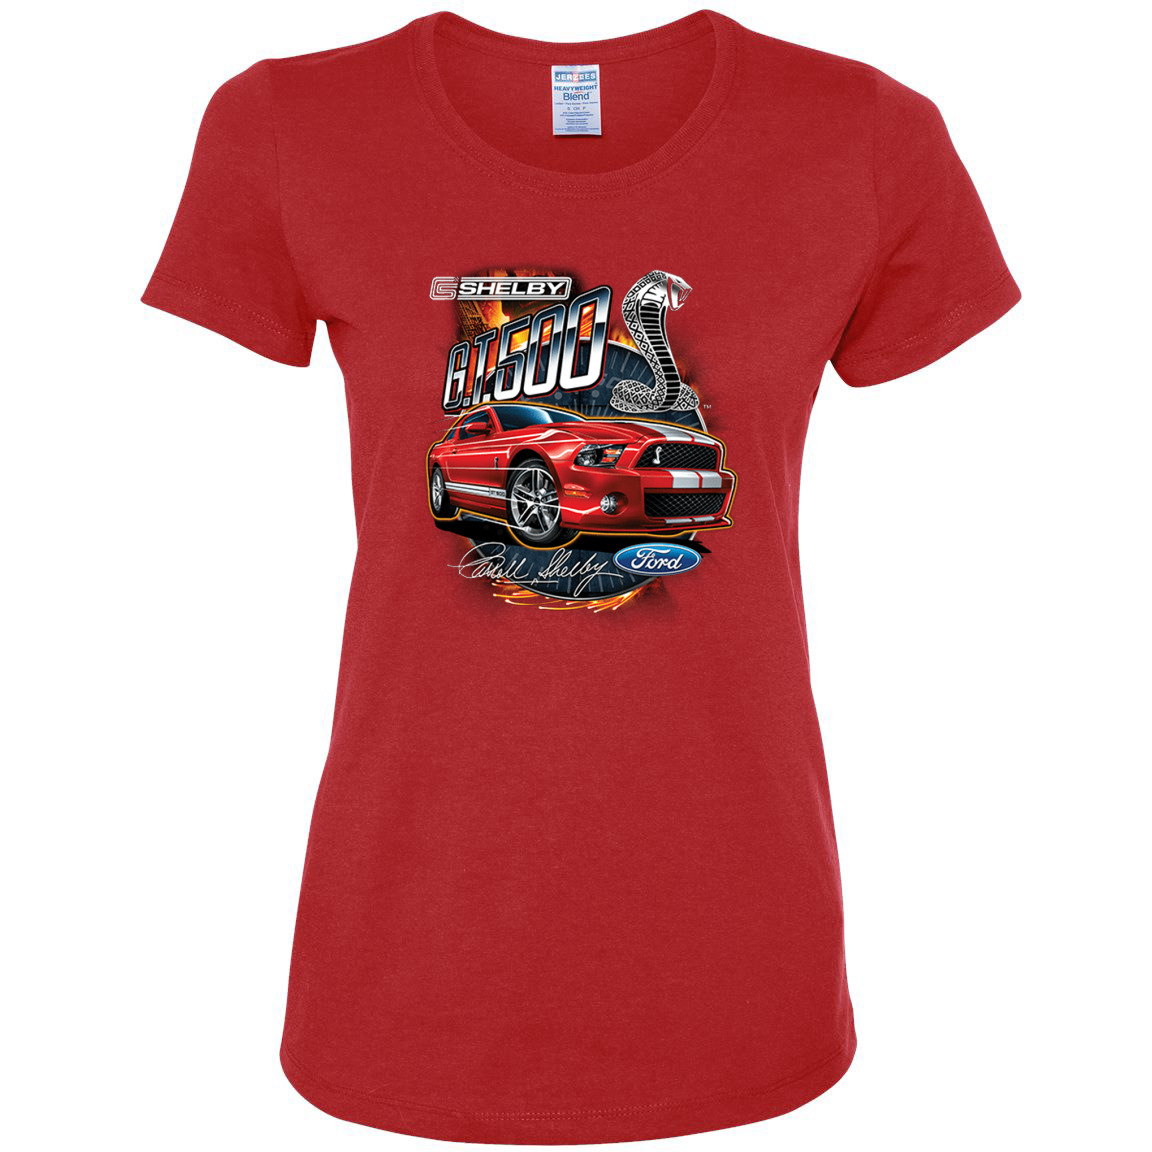 Shelby G.T. 500 Cobra Red Speedster Ford Motors Classic Cars and Trucks Womens Graphic T-Shirt